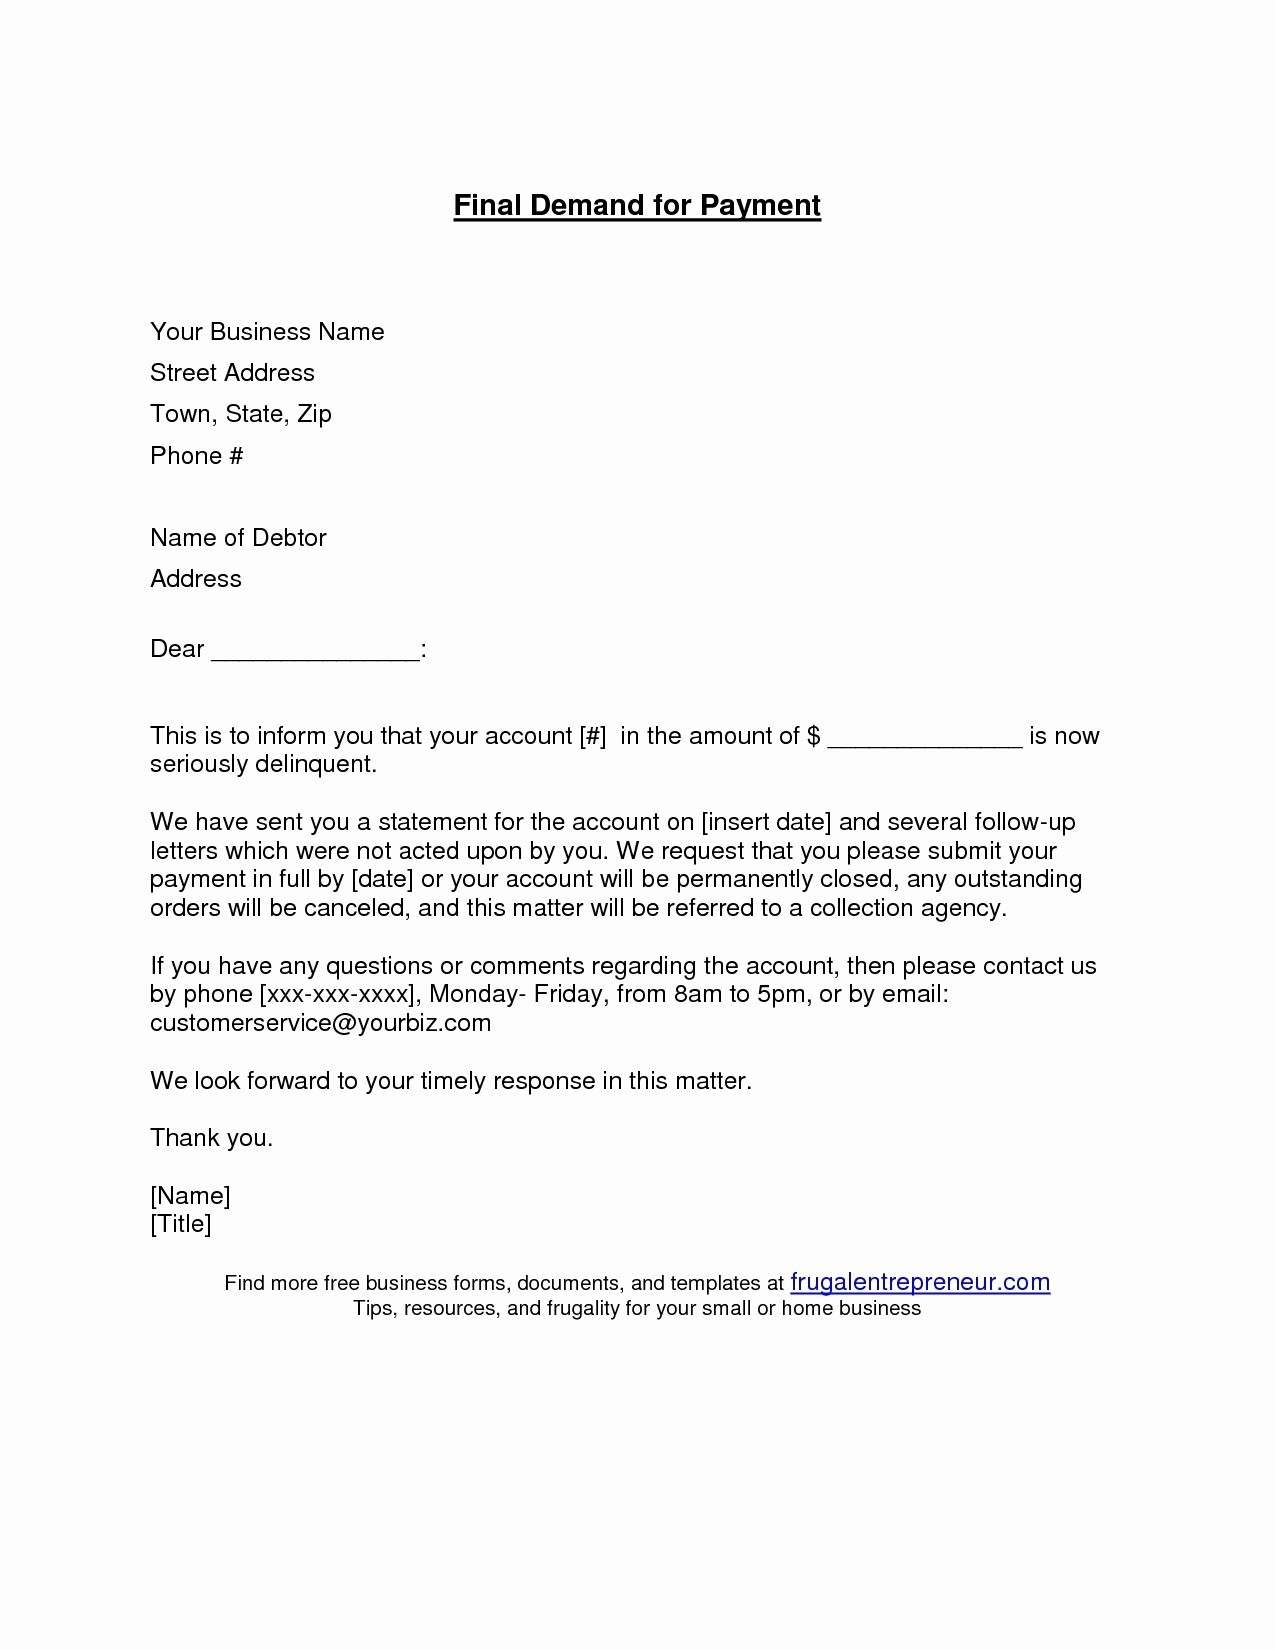 Demand for Payment Letter Template - Letter format for Payment Follow Up Inspirationa Sample Payment